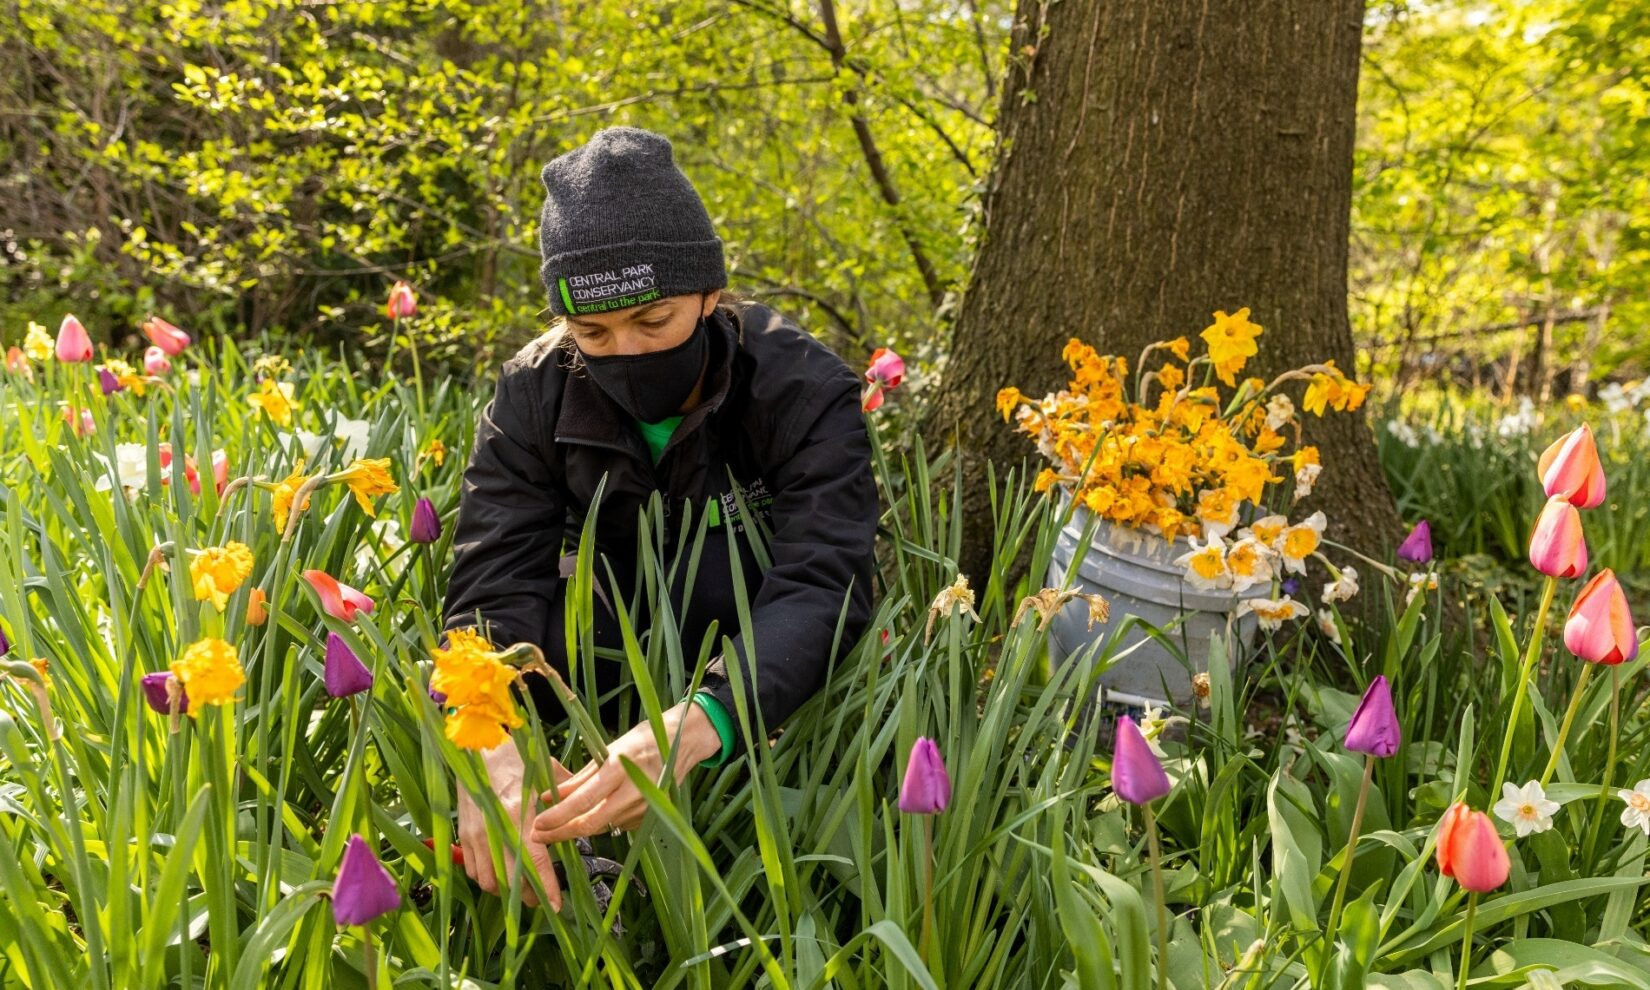 A Conservancy worker tends to a flower garden in Spring